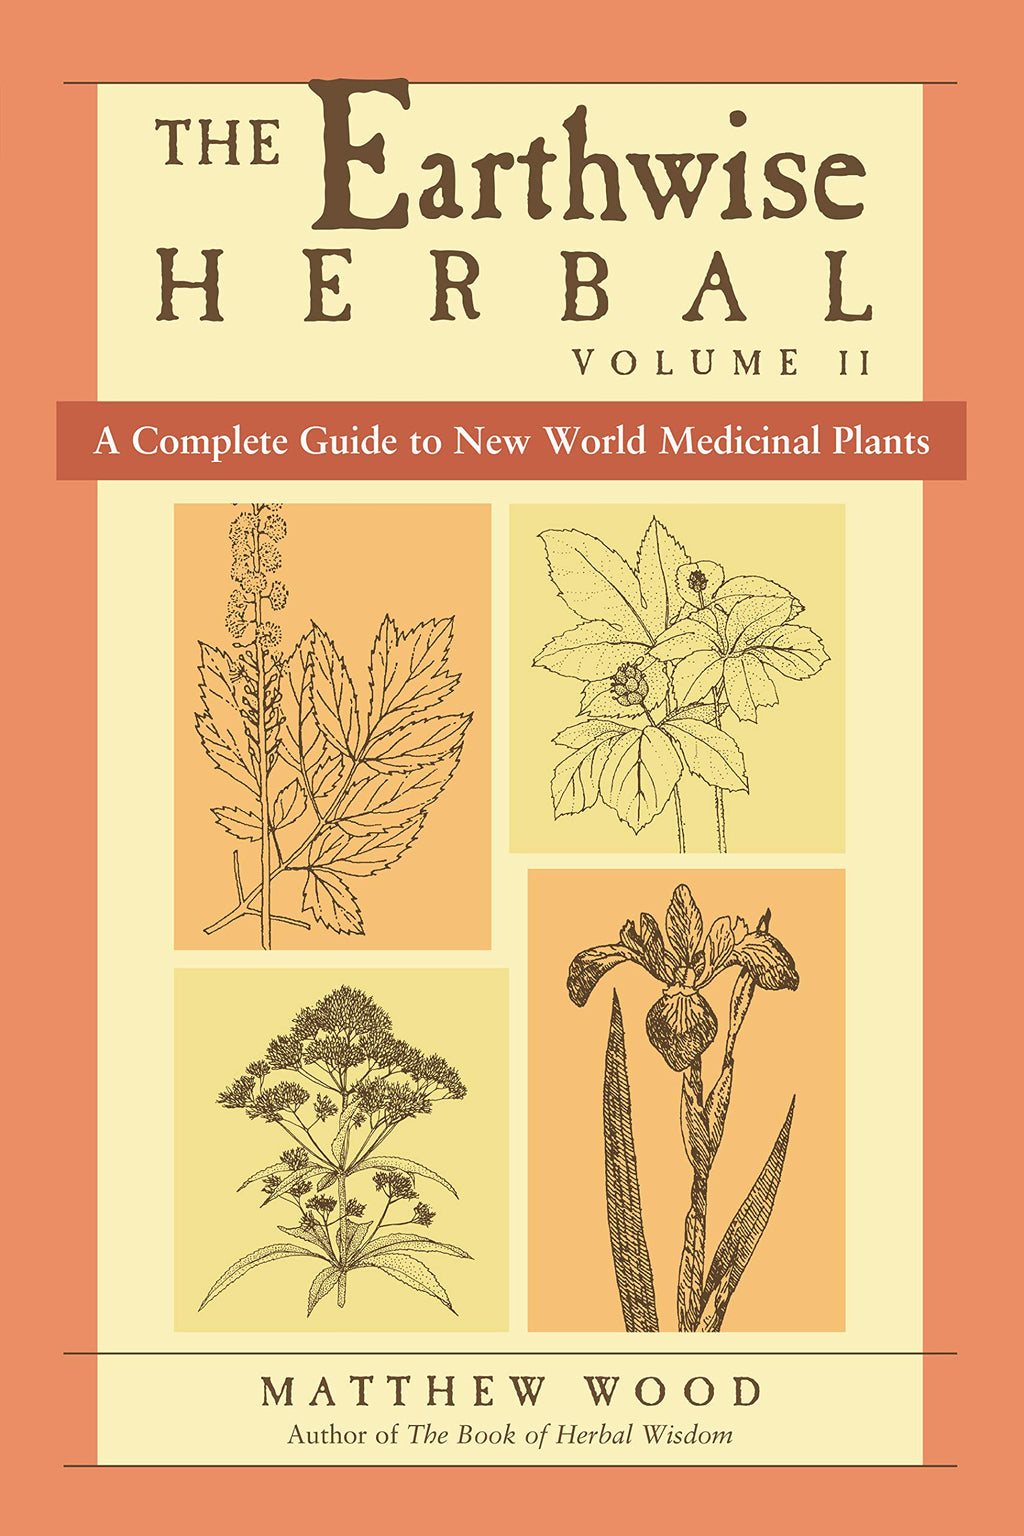 Earthwise Herbal, Volume II by Matthew Wood